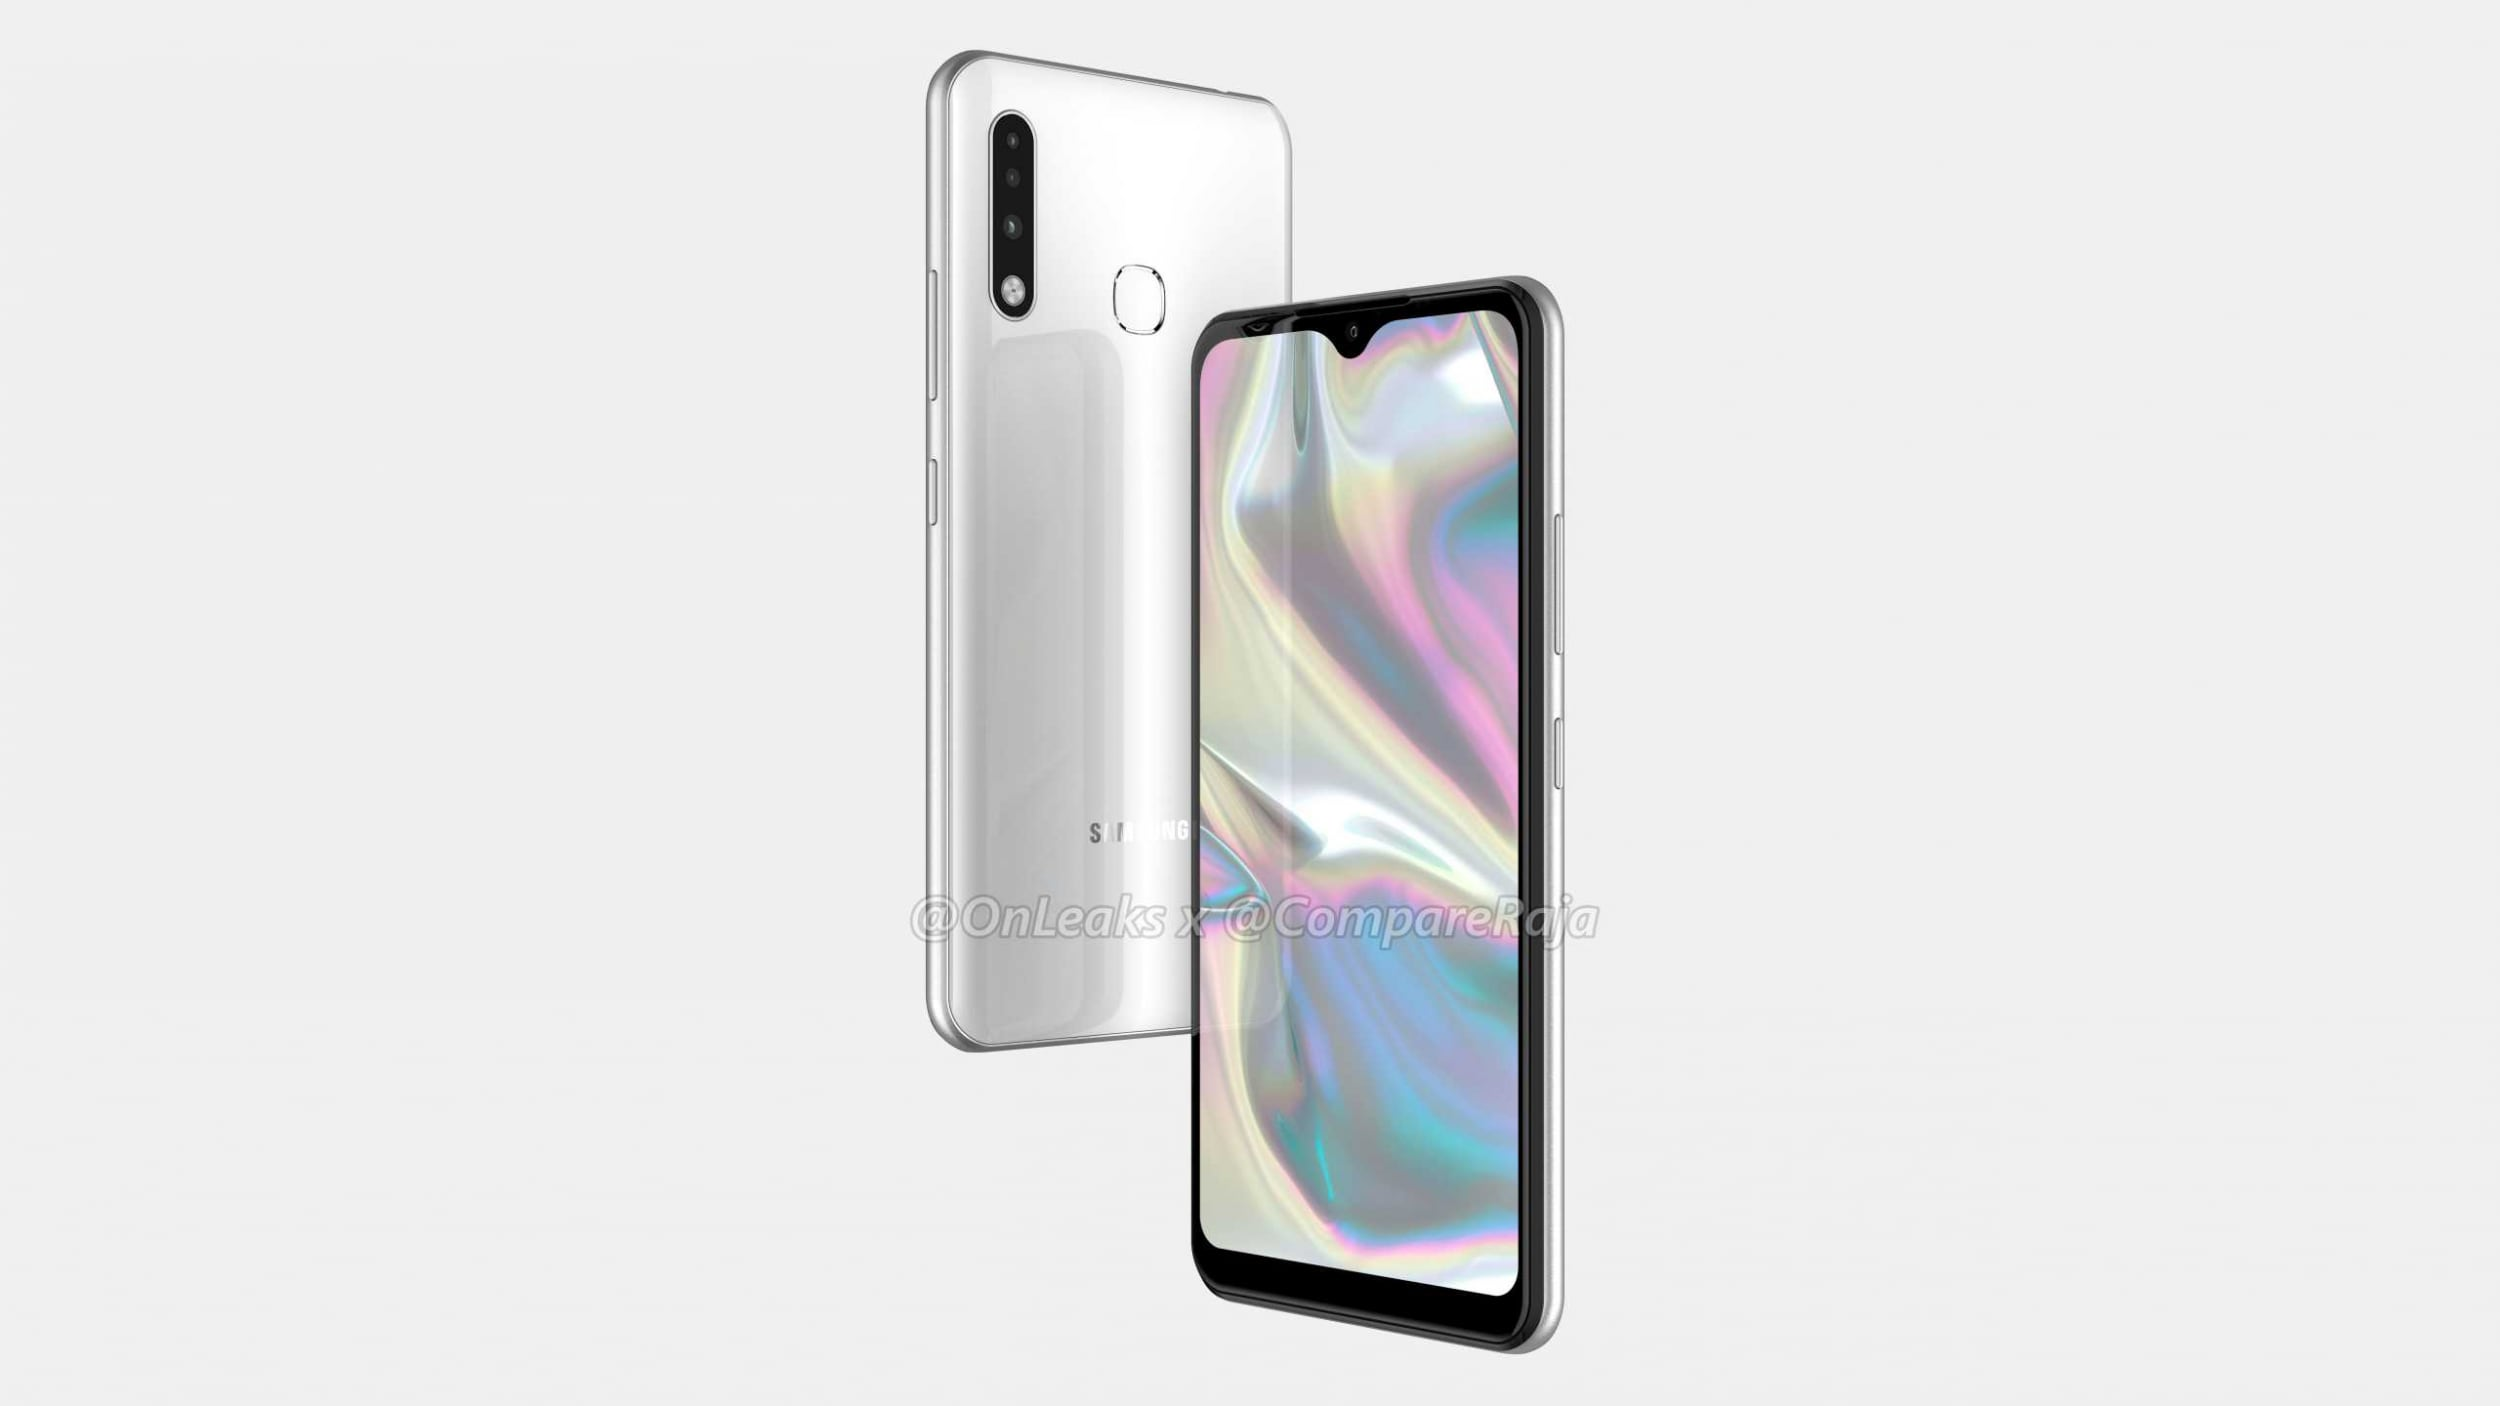 Of Samsung Galaxy A70e we have nothing but these beautiful renders